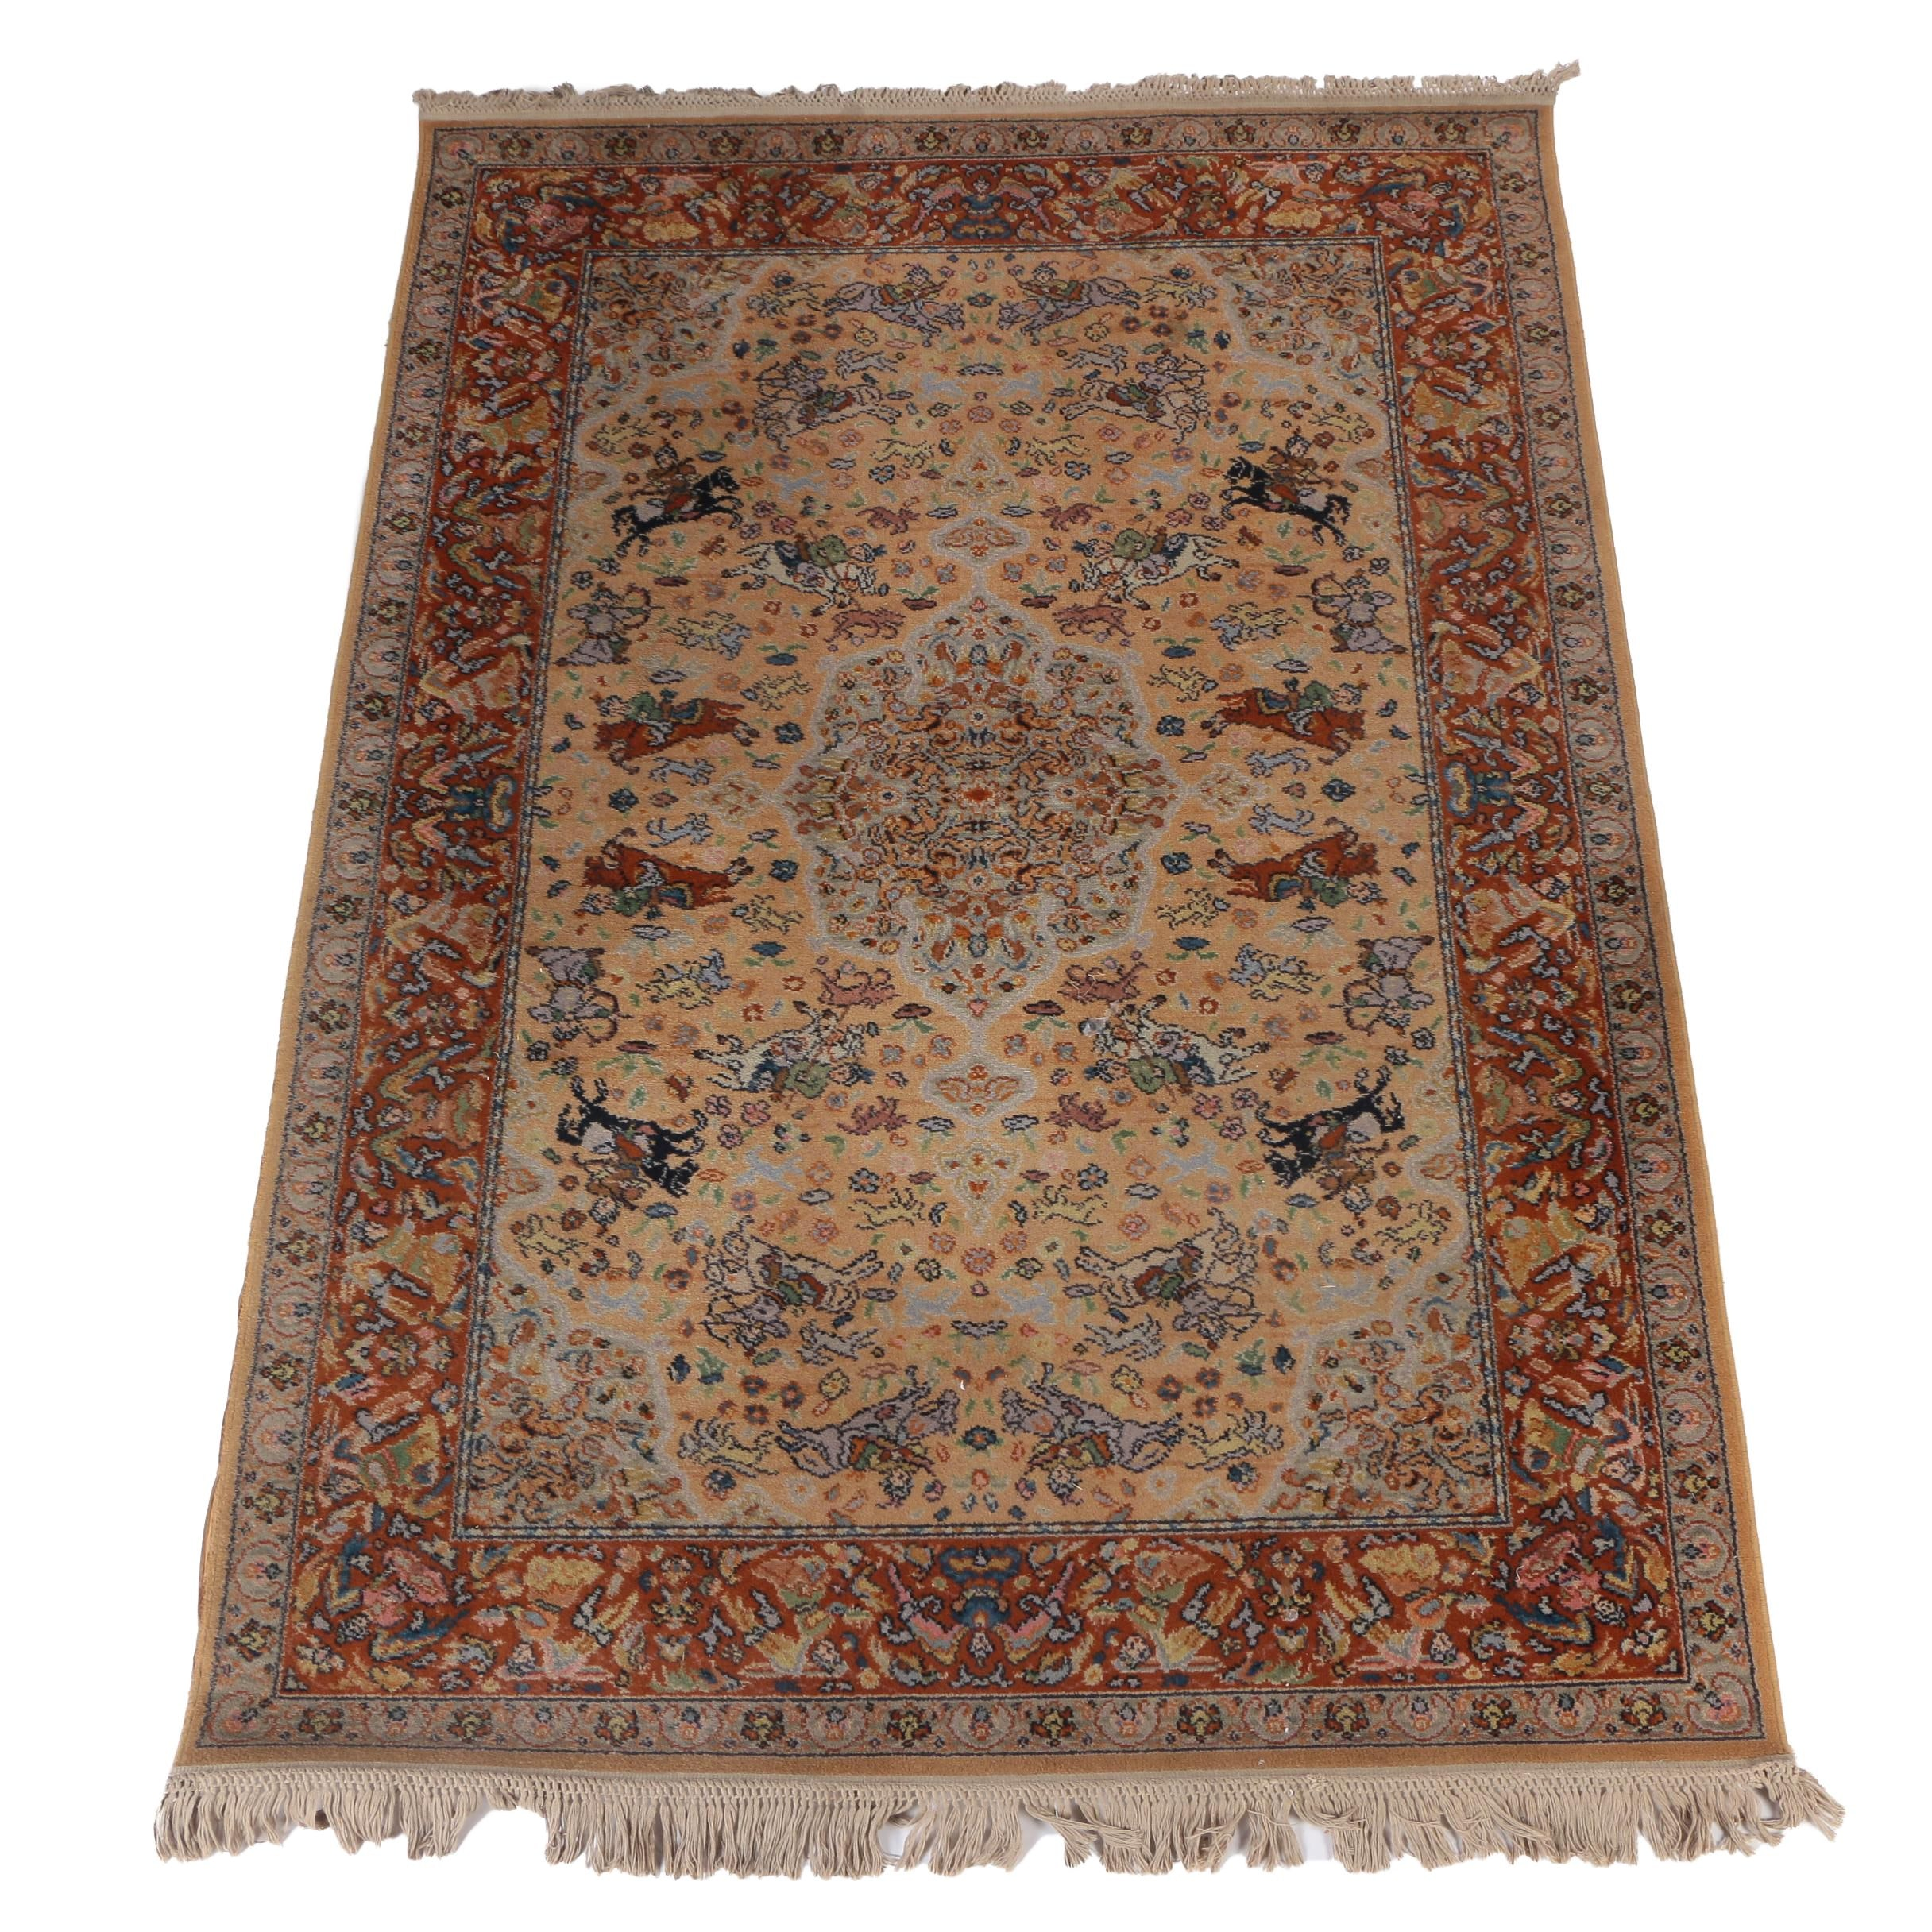 Machine Made Persian Qum Style Area Rug